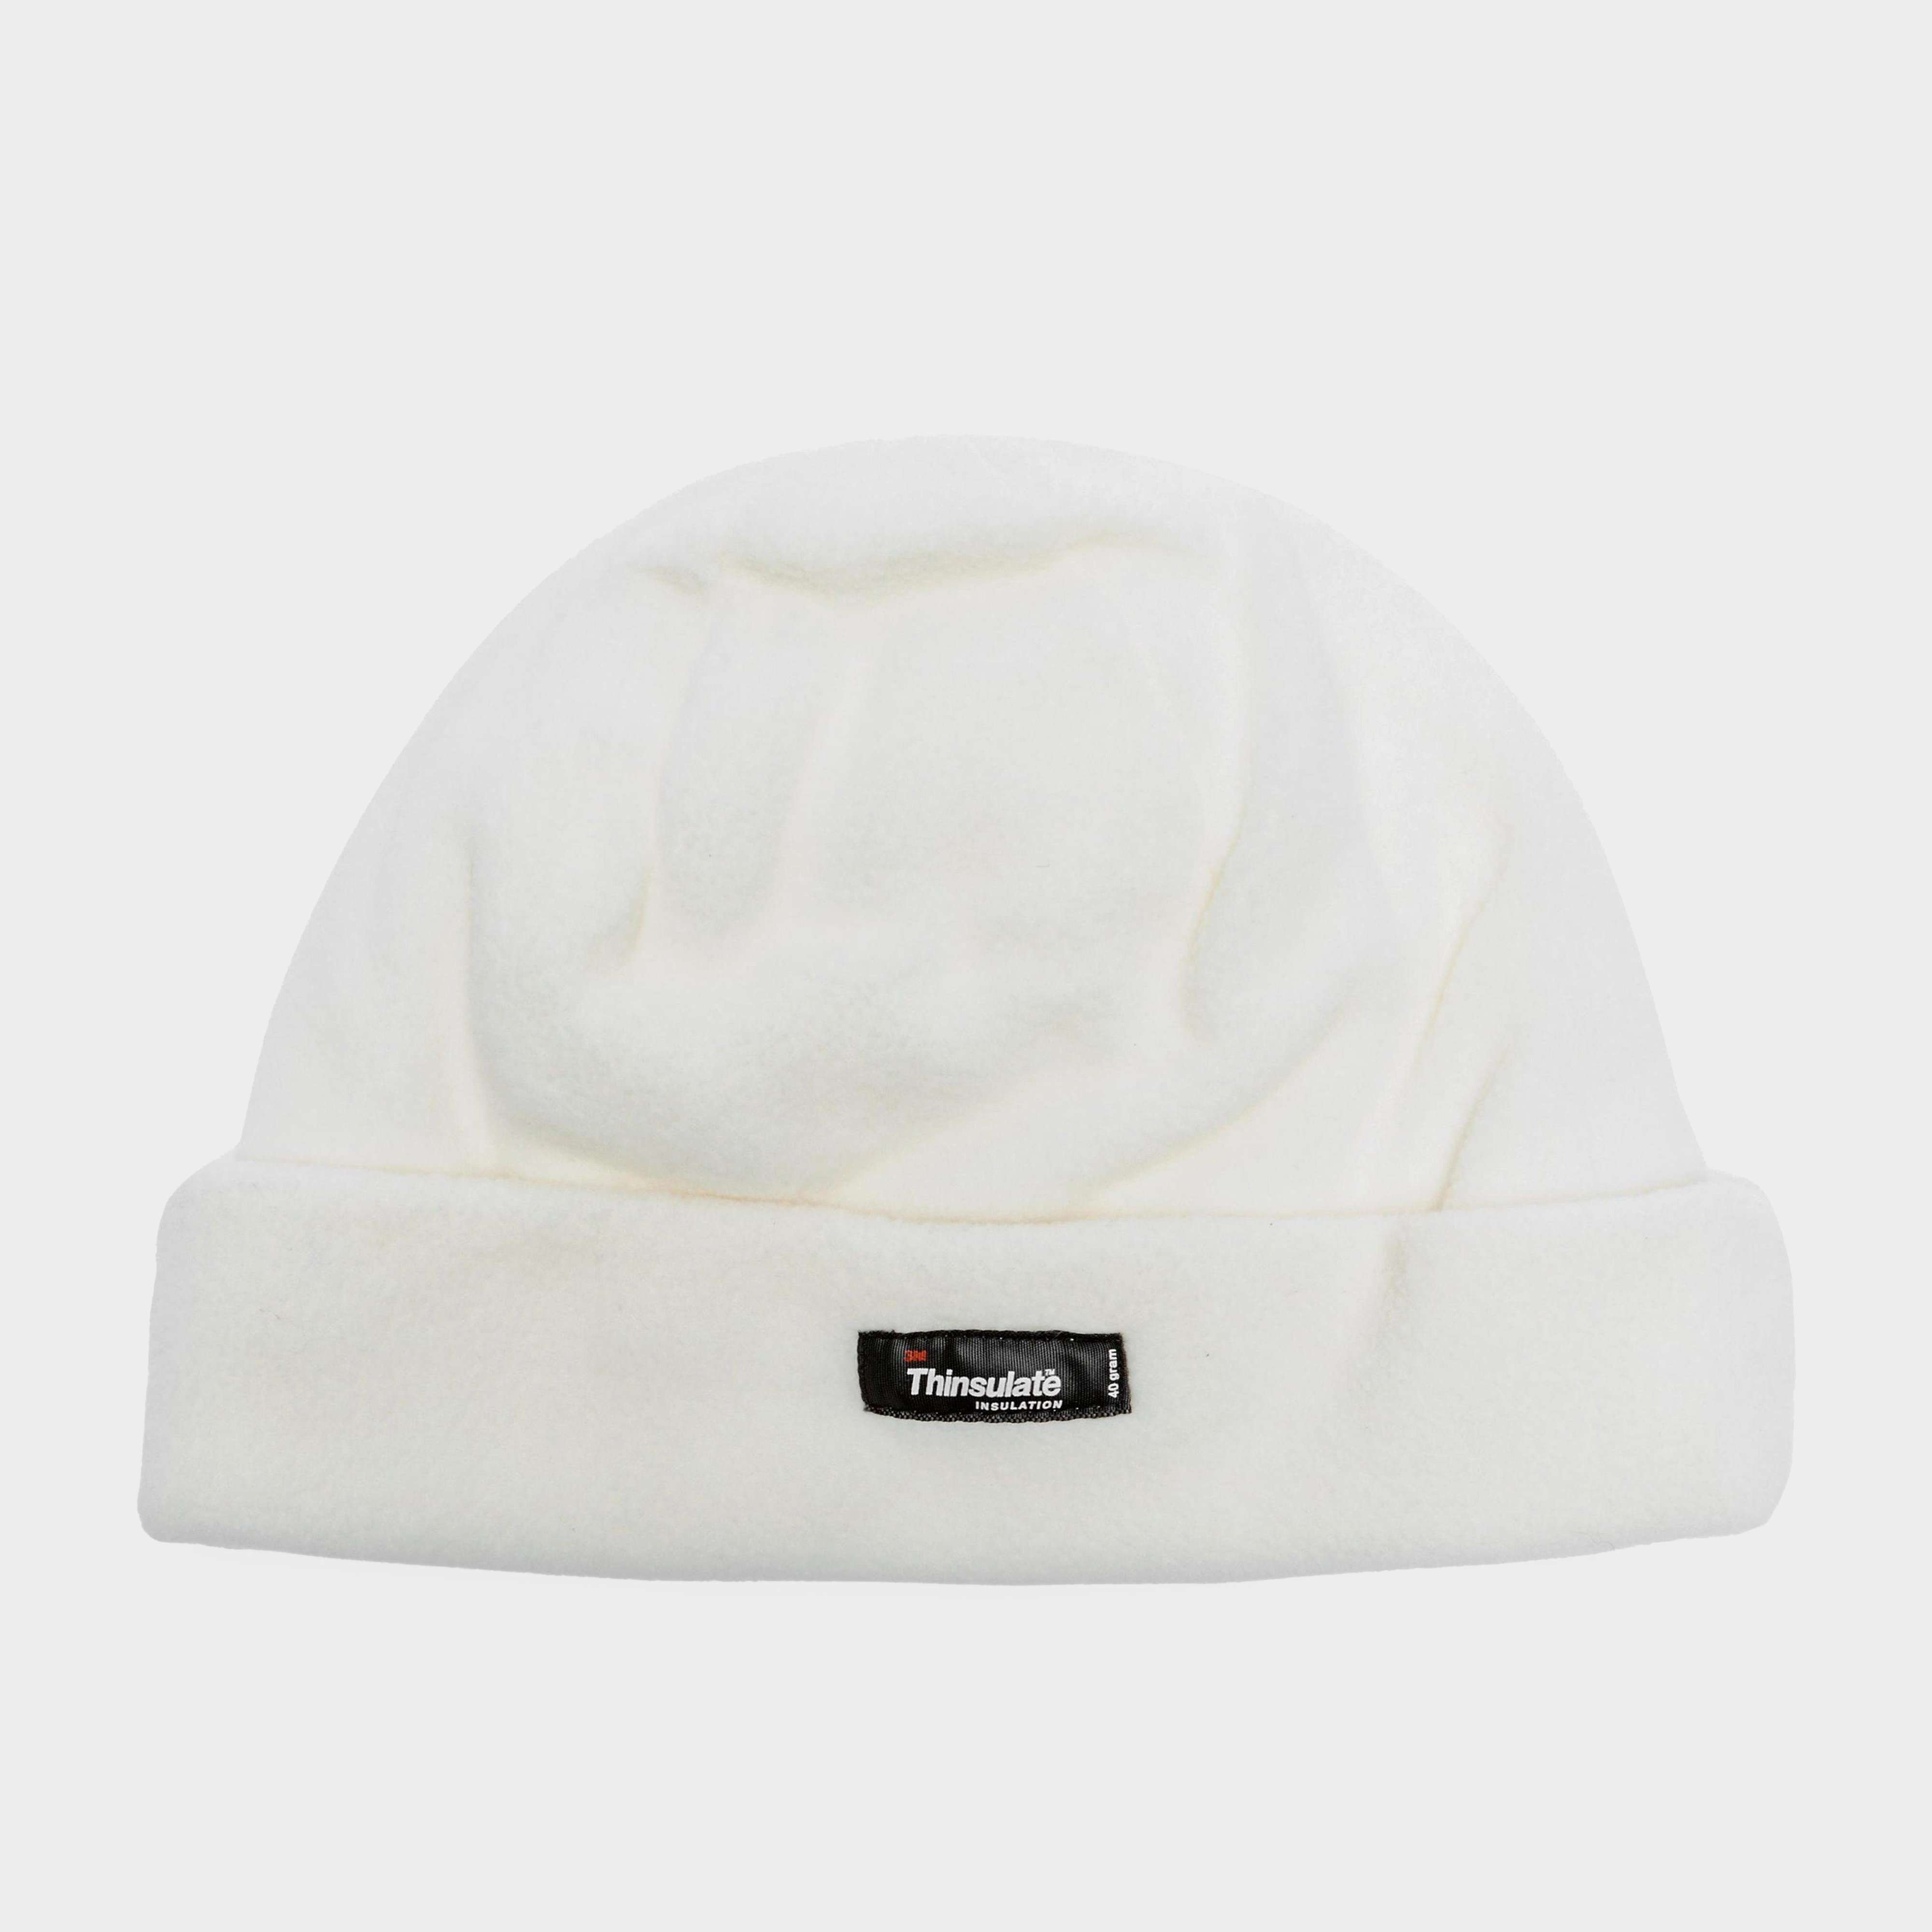 PETER STORM Thinsulate Fleece Beanie